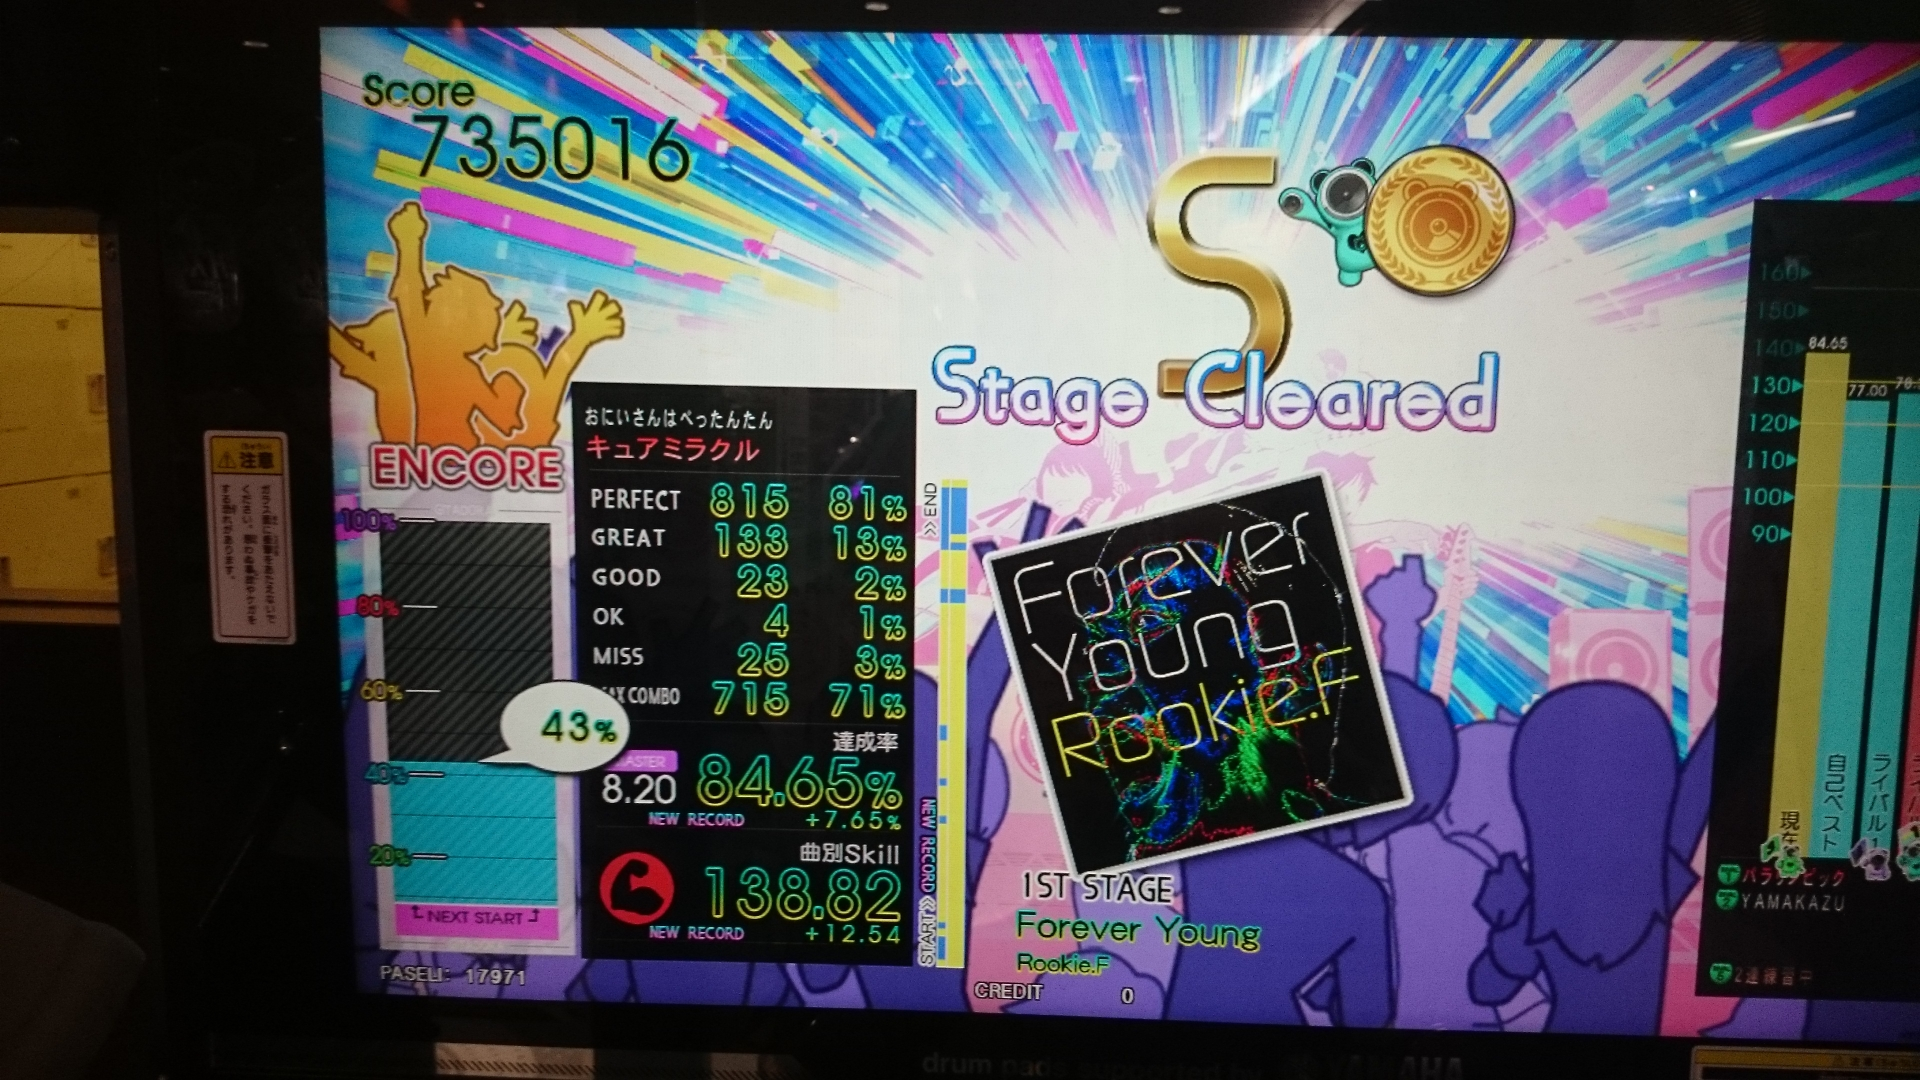 Forever Young 84.65%